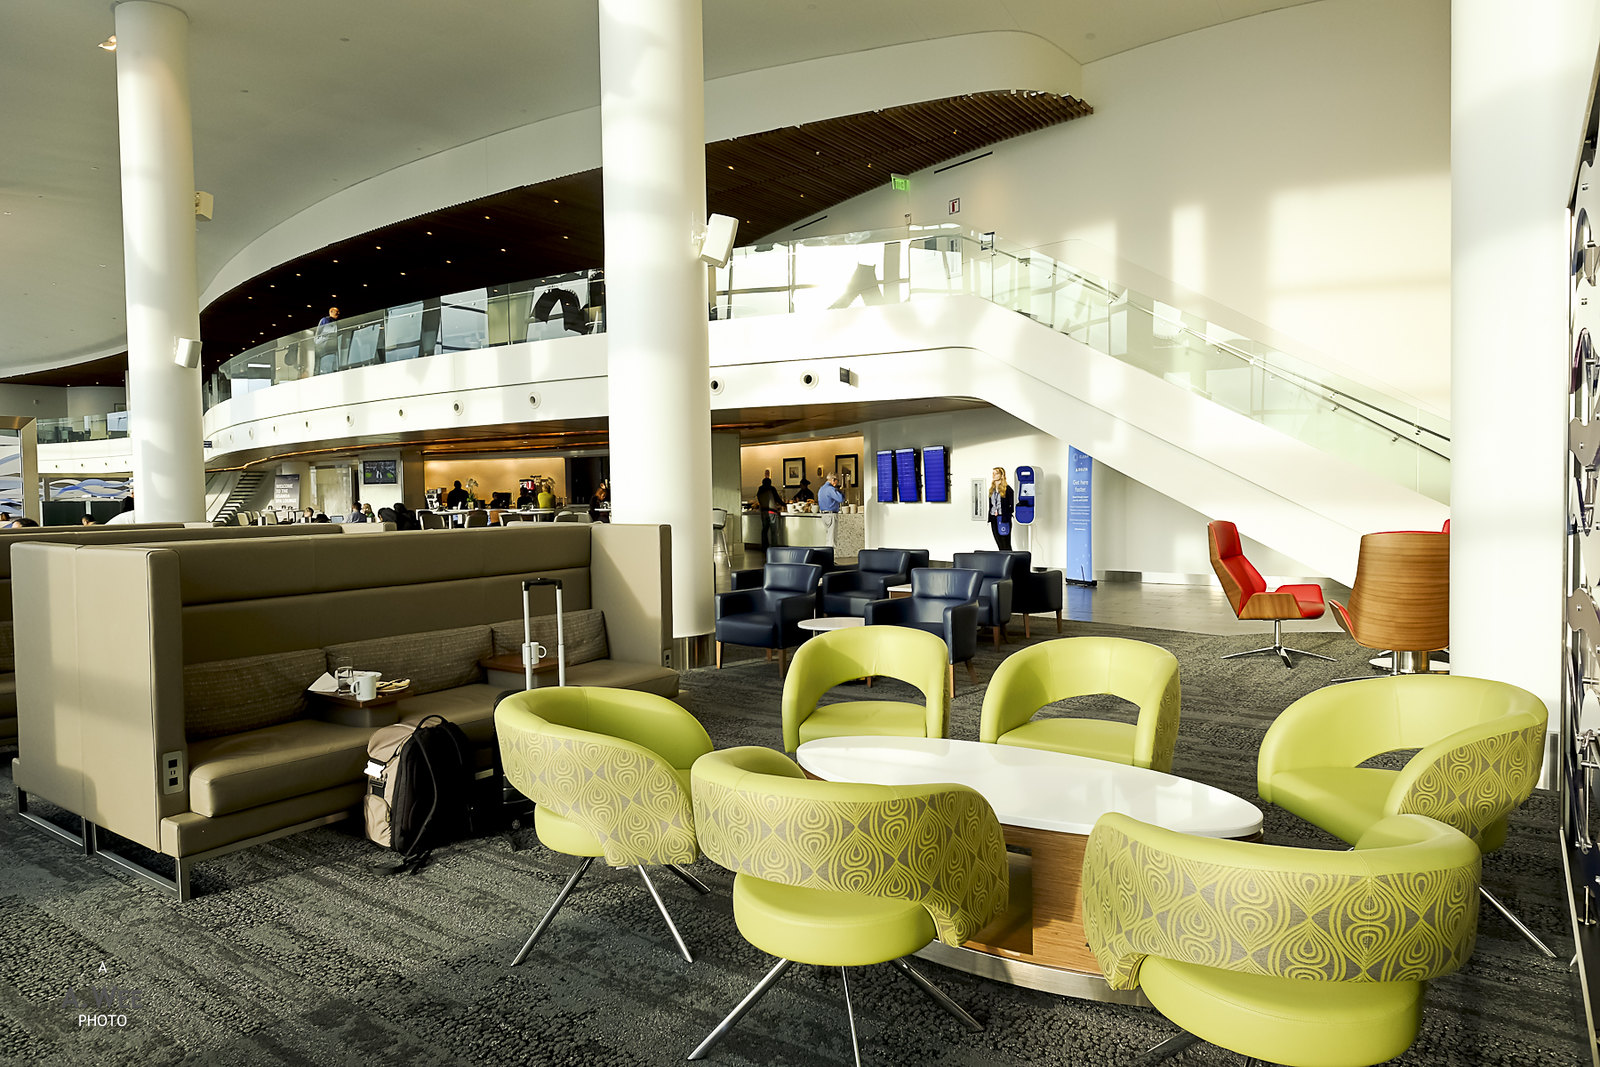 Group seats in the lounge